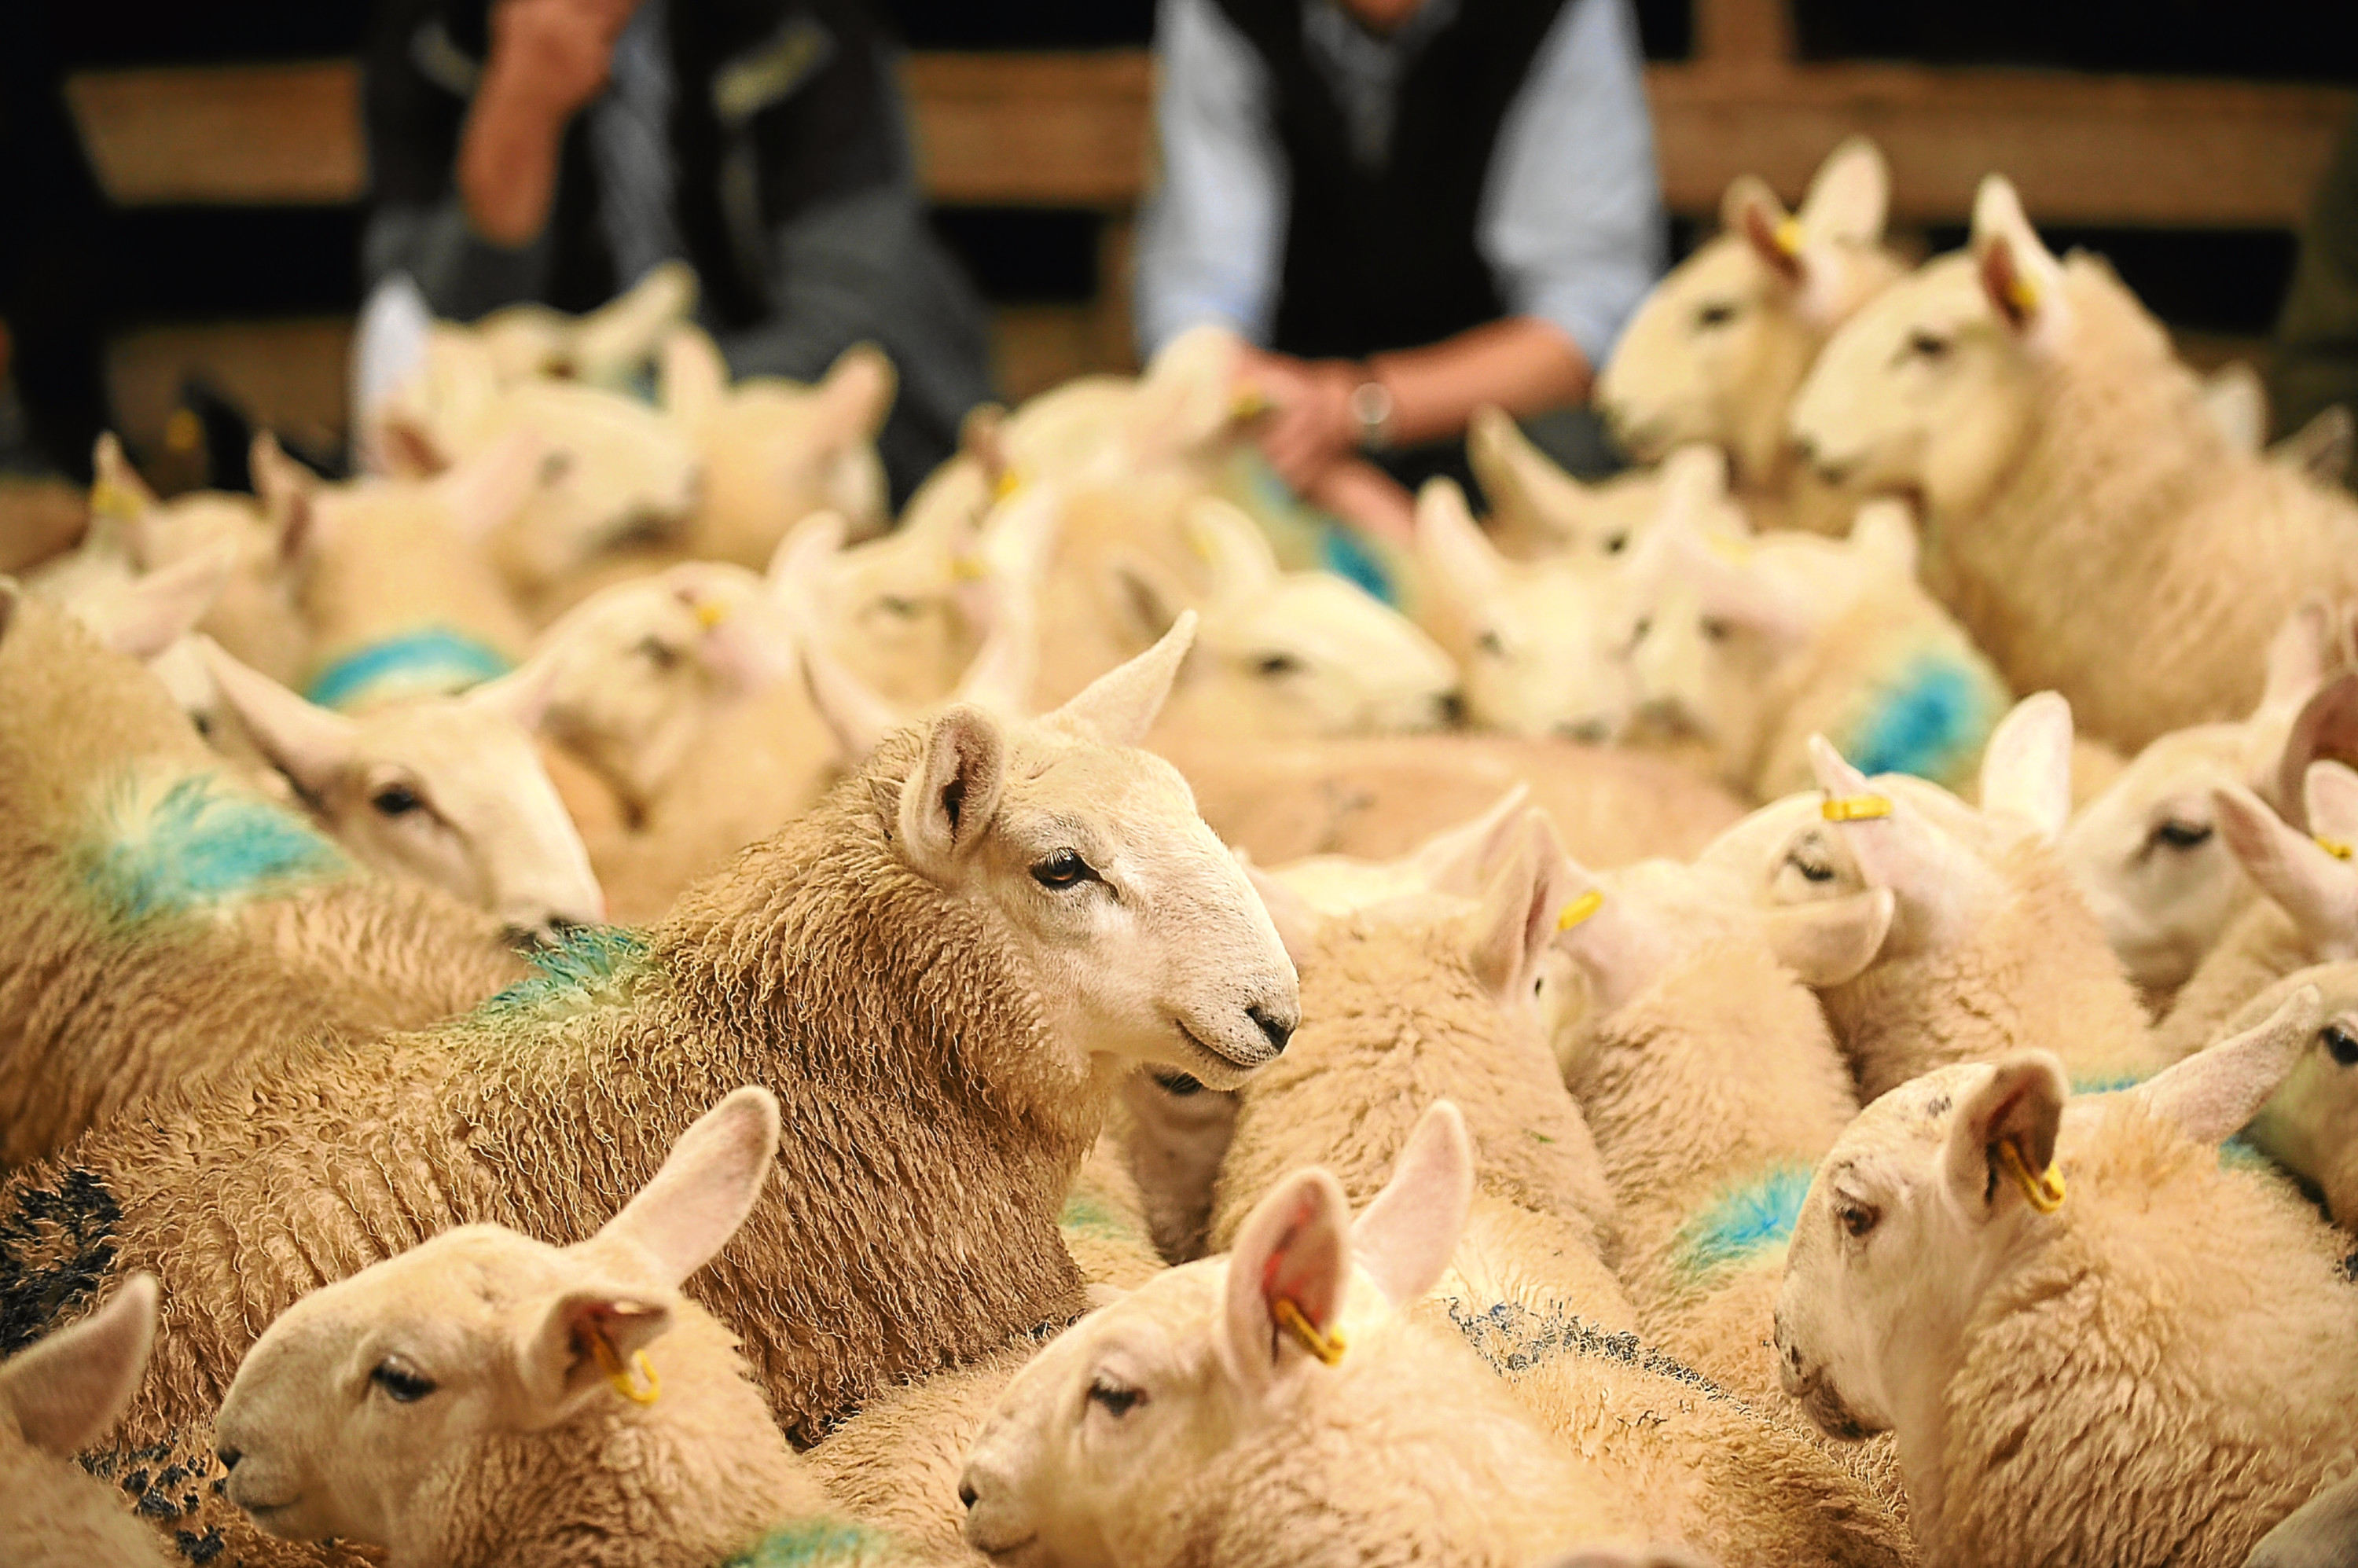 The auctioneers' representative body has drawn up a scheme to compensate sheep farmers in the event of a no-deal Brexit.